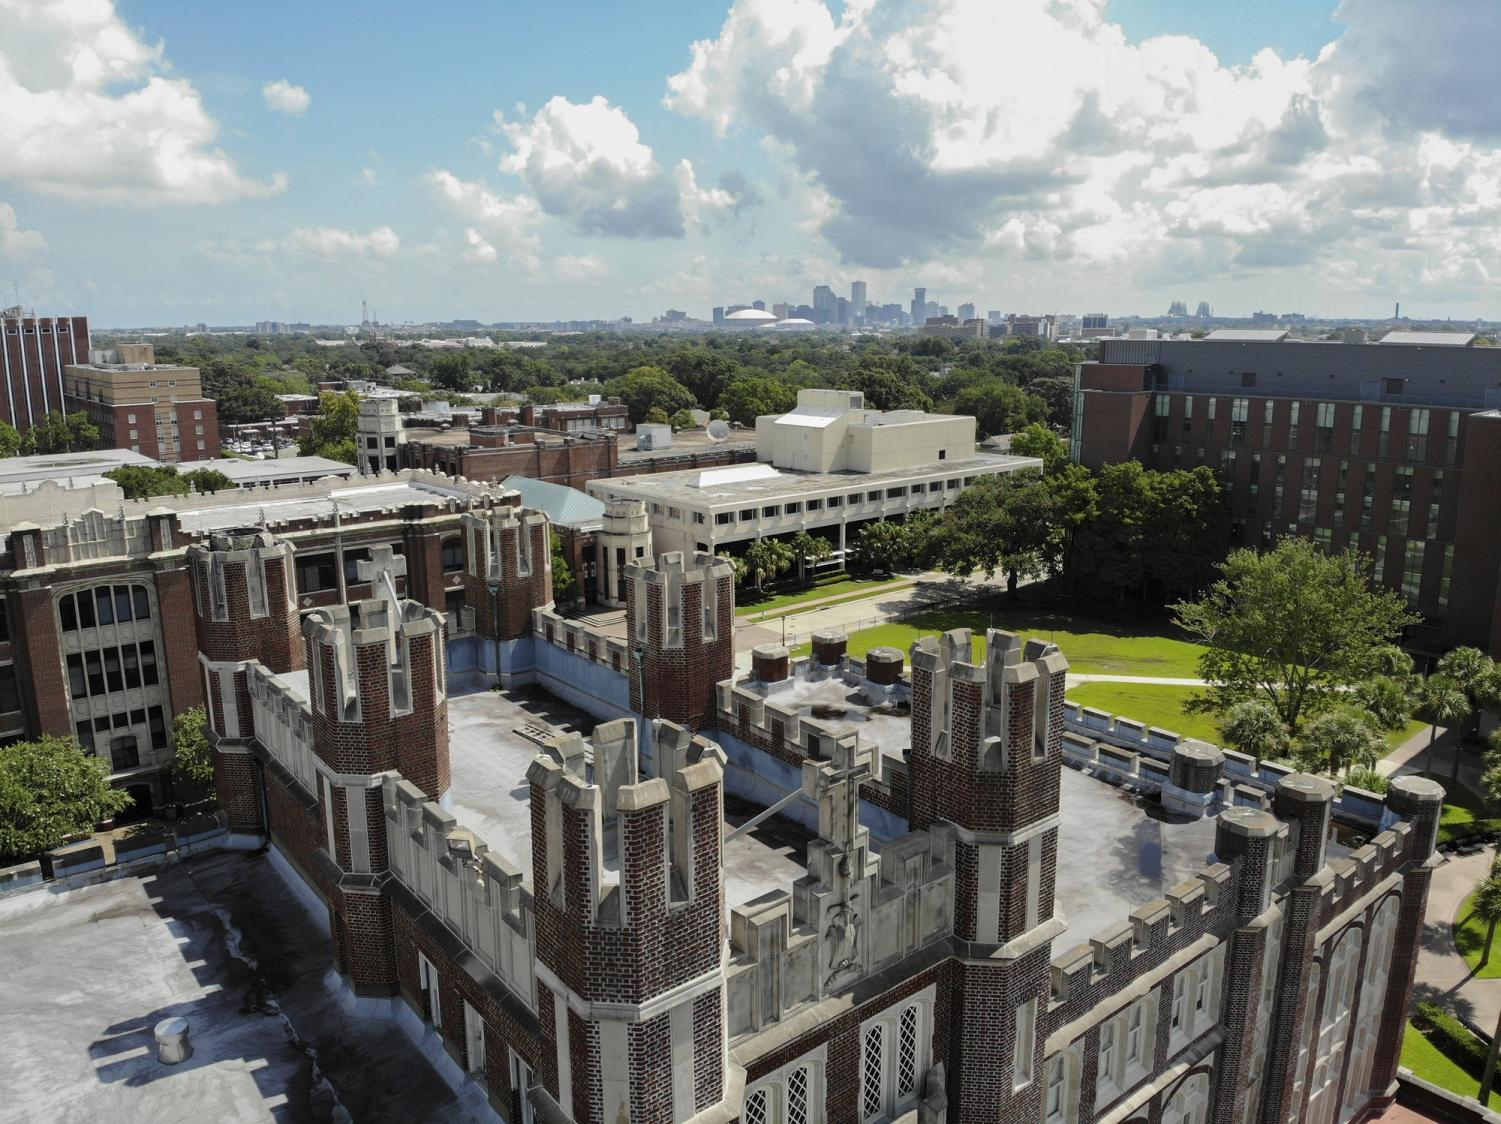 The Mercedes-Benz Superdome sits on the horizon of at Loyola. The Superdome was the previously planned host of the spring 2020 commencement which will now be in the Ernest N. Morial convention center.